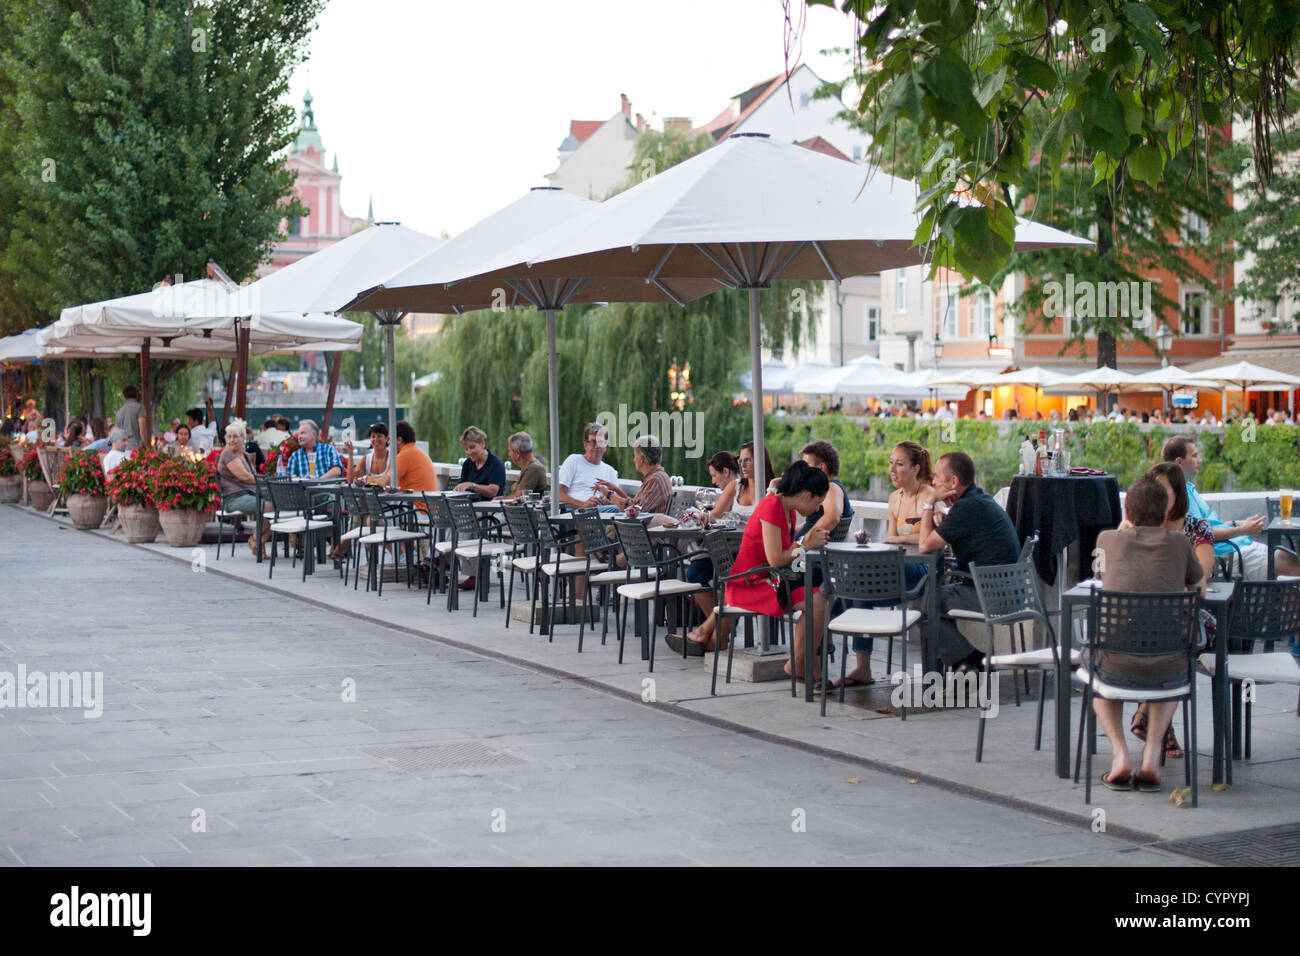 Sidewalk cafés on the banks of the Ljubljanica River in the old town in Ljubljana, the capital of Slovenia. - Stock Image